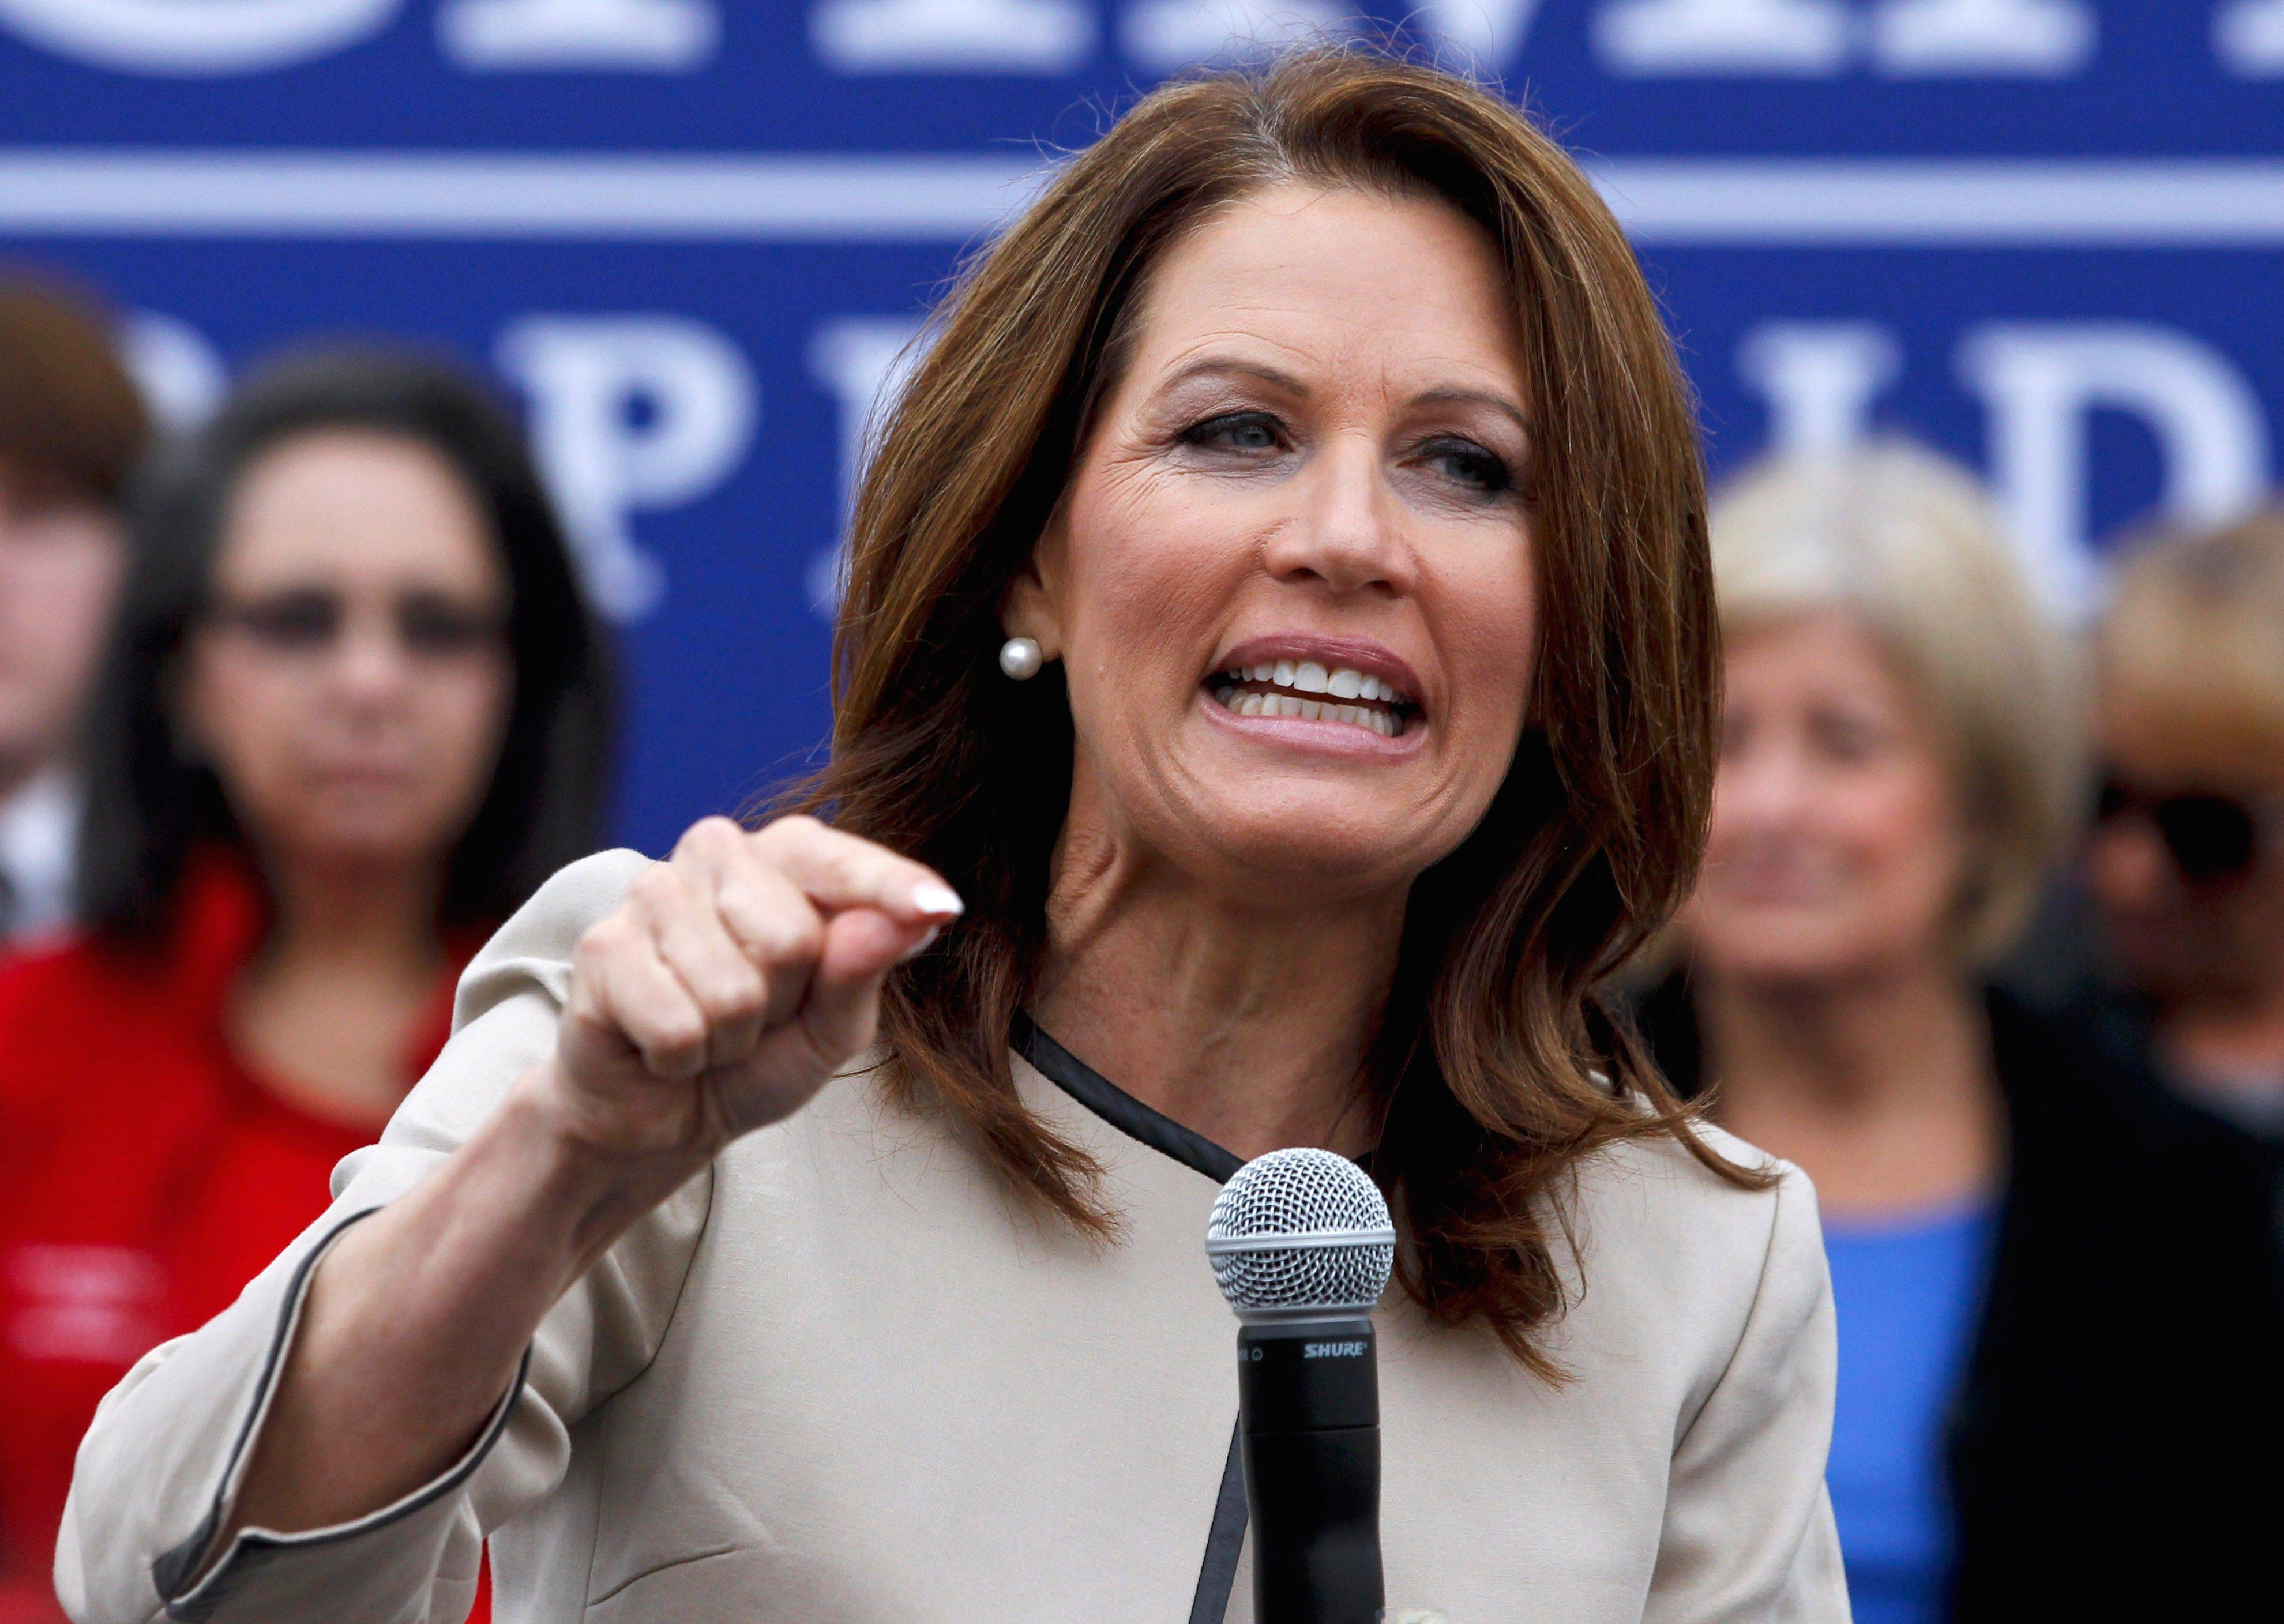 Republican presidential candidate, Rep. Michele Bachmann of Minnesota., speaks Friday during a rally in Costa Mesa, Calif.